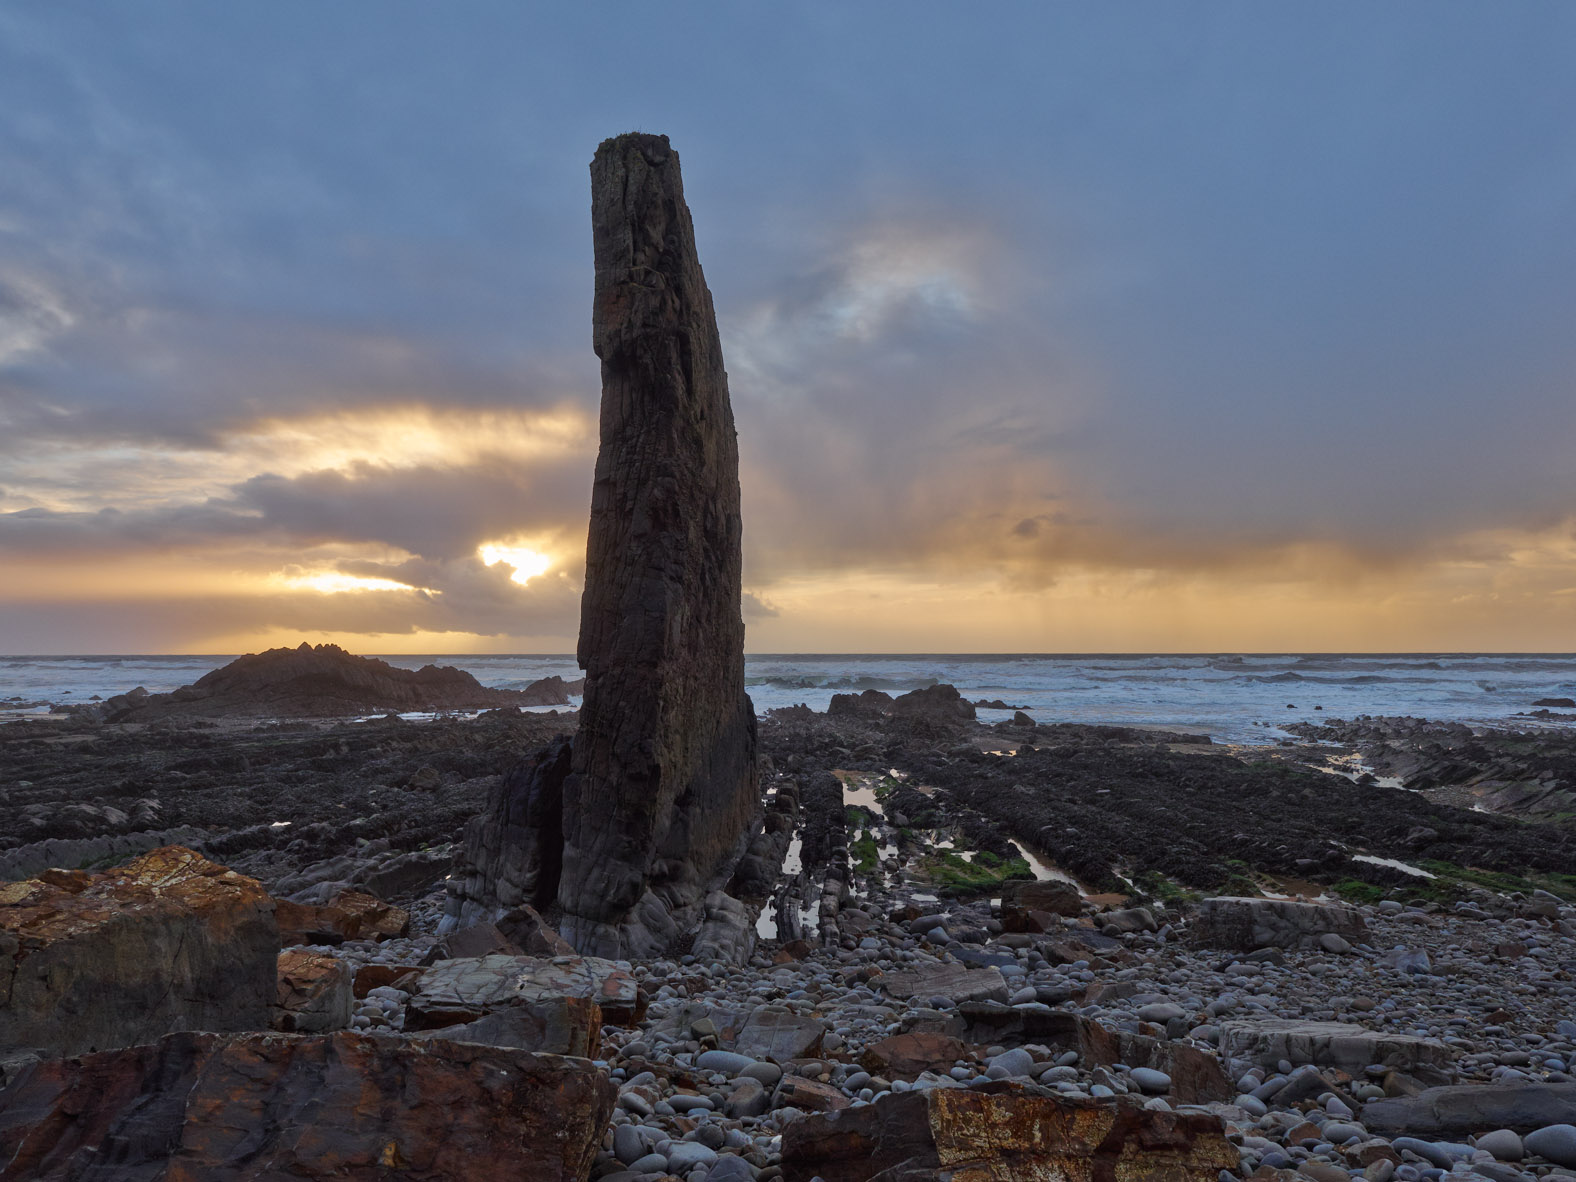 Unshore Rock, Northcott Mouth converted in Capture One Pro